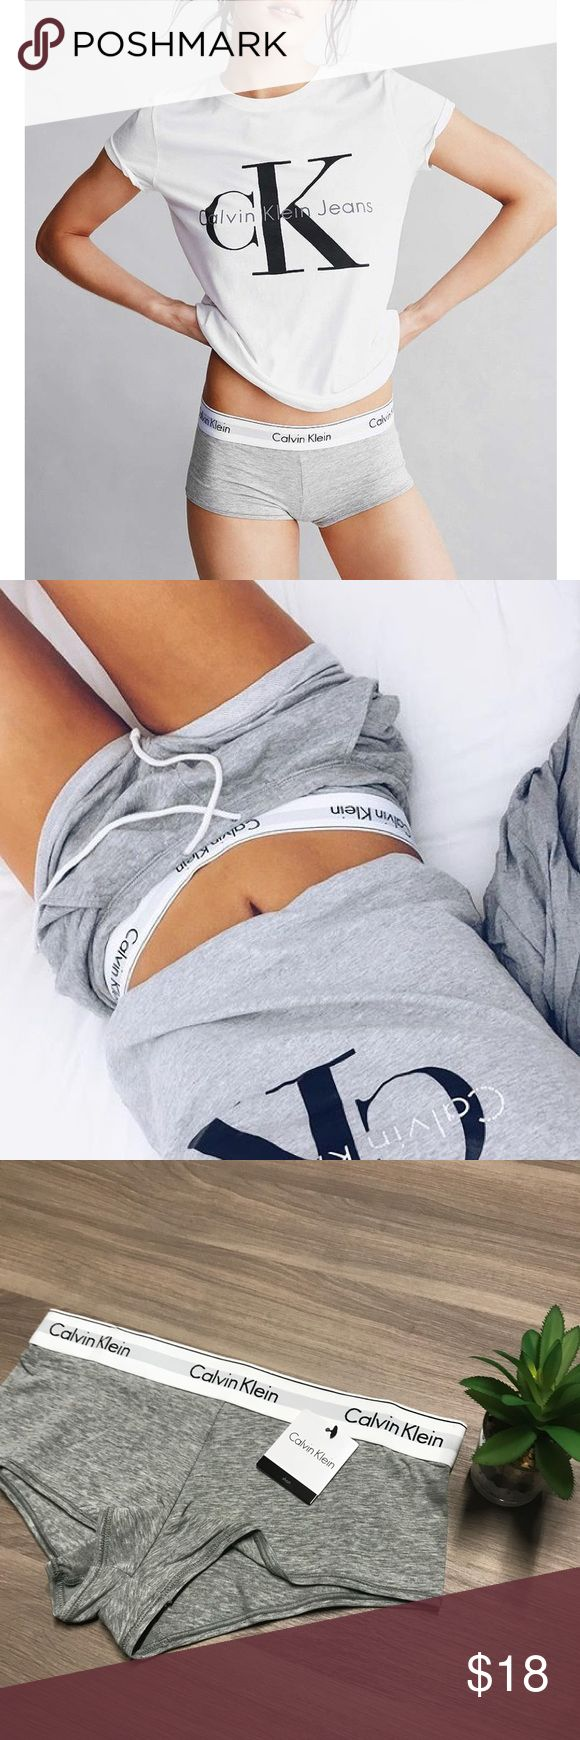 Calvin Klein Boy Short Undies NWT! Super trendy gray with large logo all the way around the white band. Sz Small.   Comment with questions No trades Offers welcome through the offer feature Bundle to save even more! Can ship in two days max! Thanks for looking!  Xoxo Amanda Calvin Klein Intimates & Sleepwear Panties